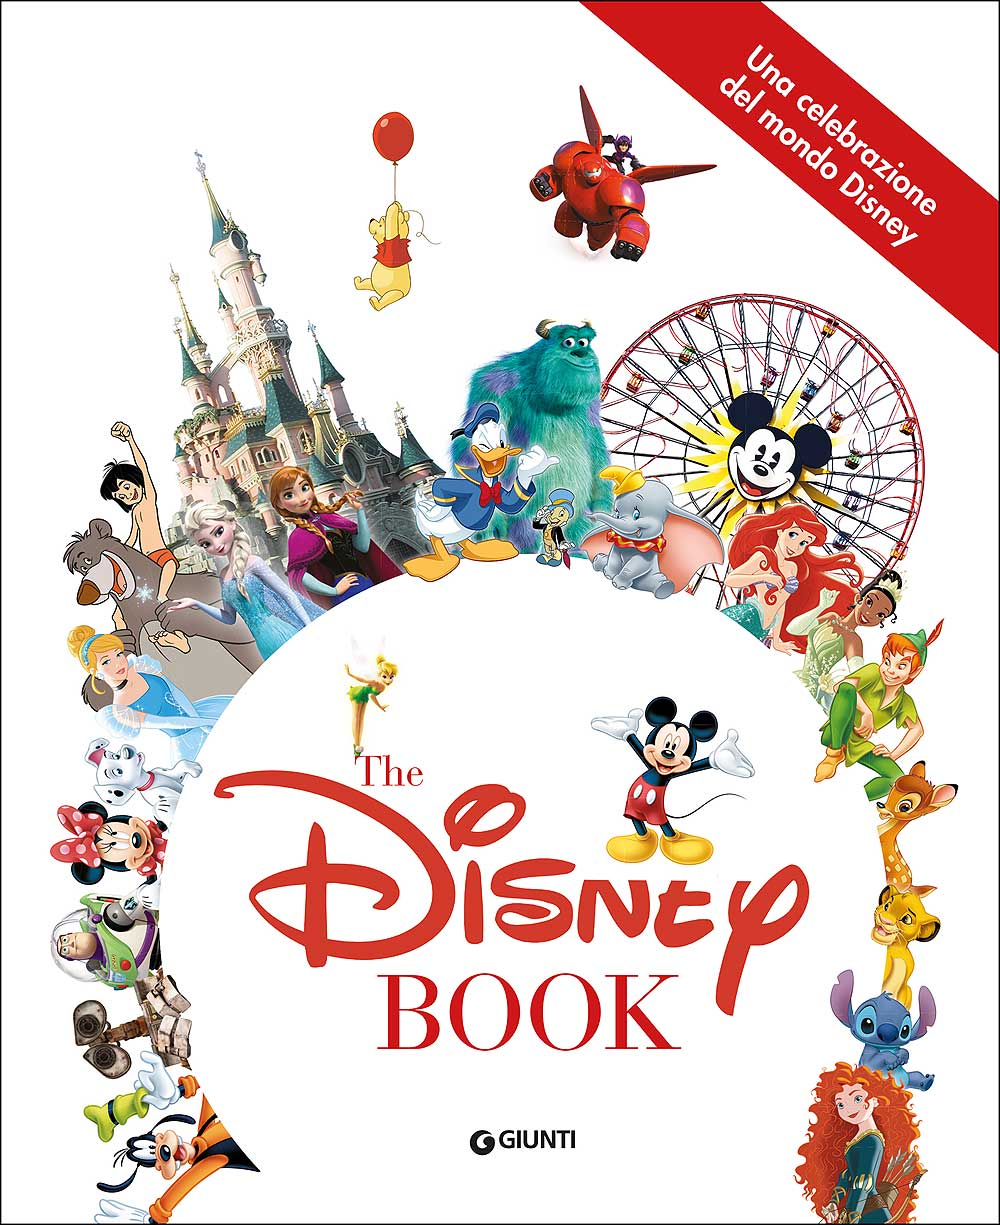 Enciclopedia dei Personaggi - The Disney Book